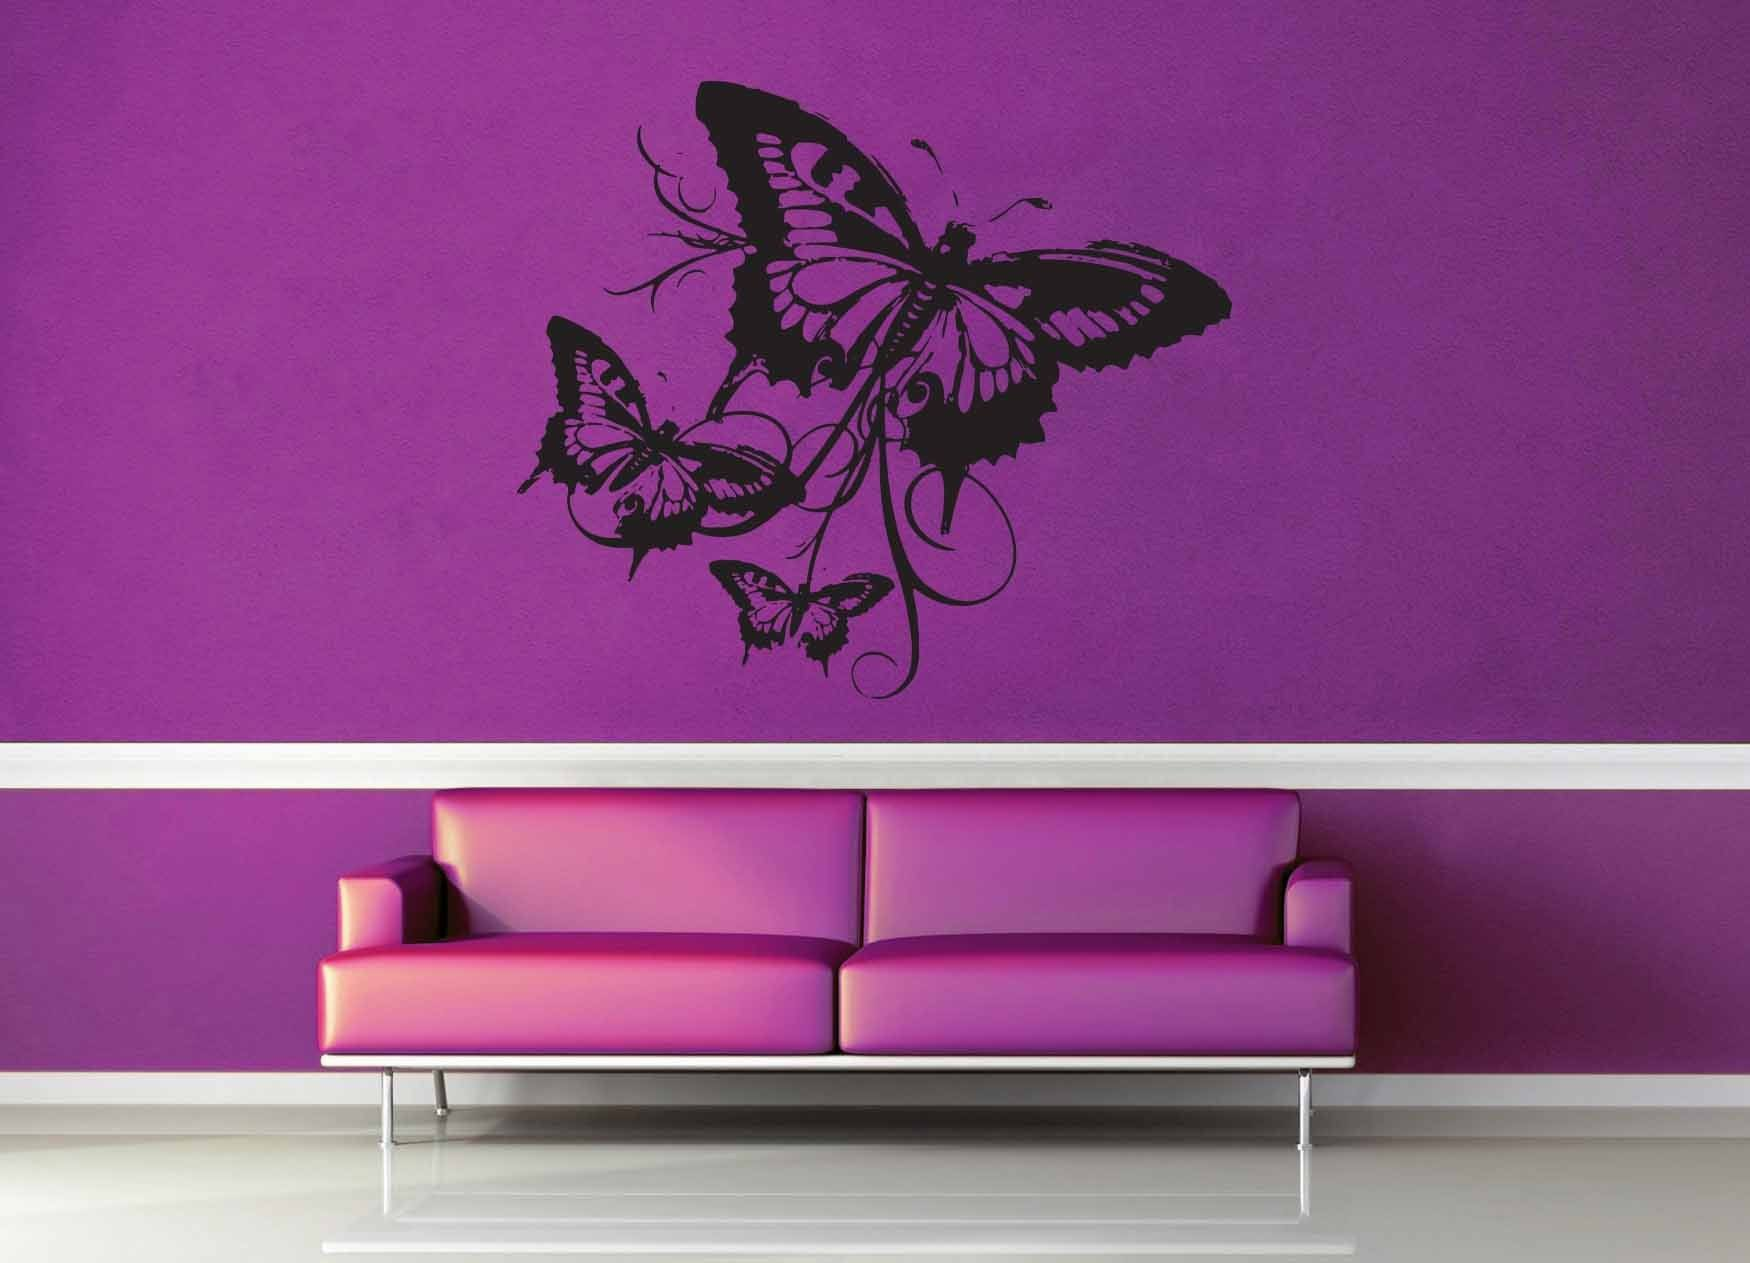 Flight of the Butterflies - Wall Decal